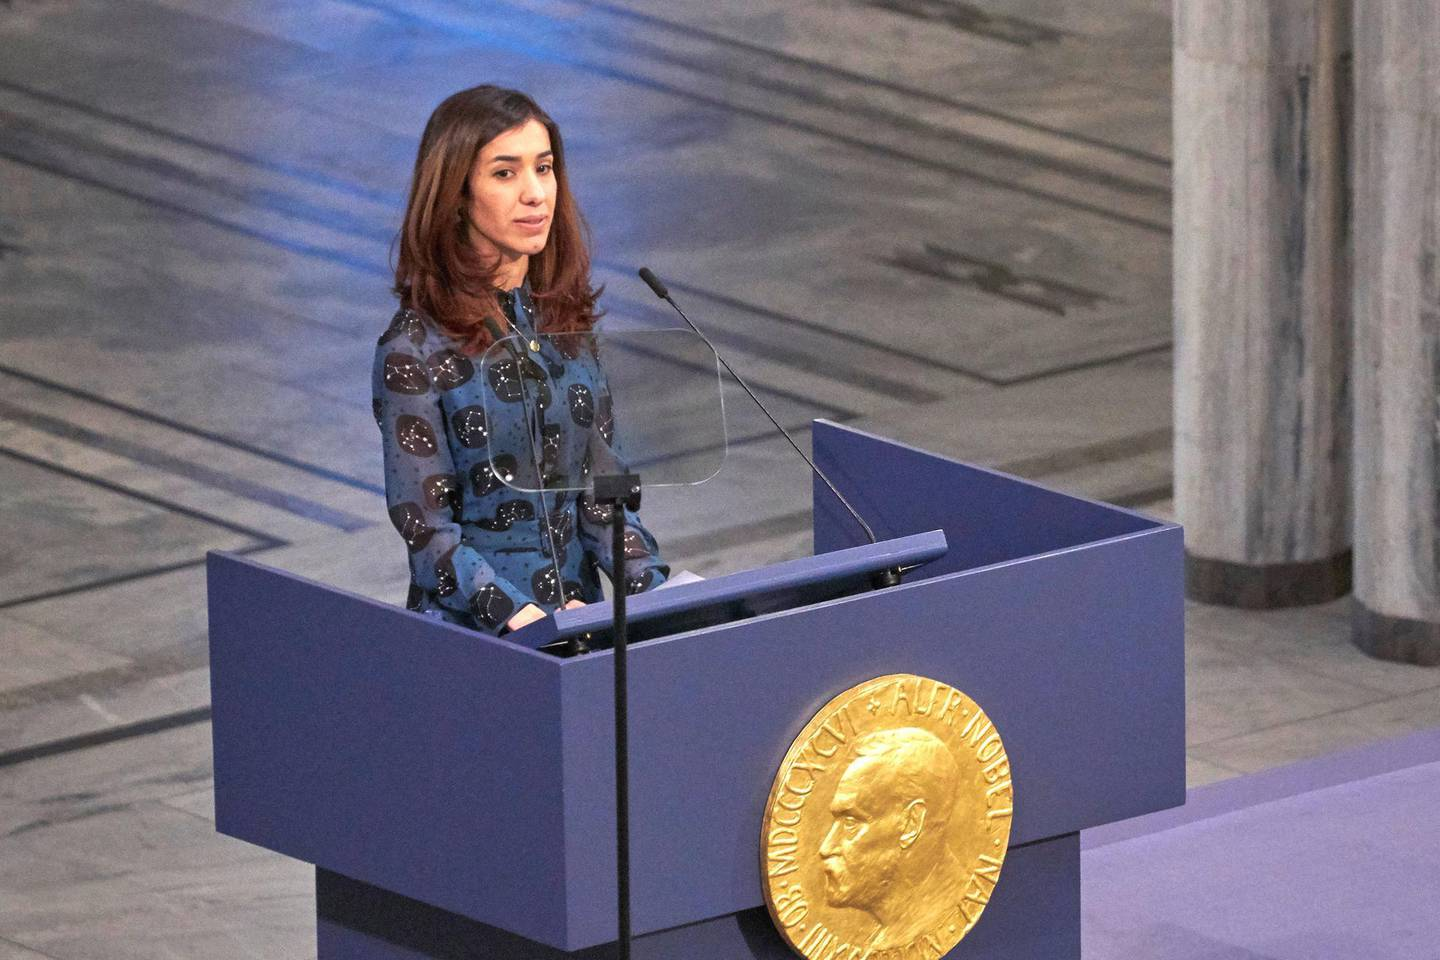 OSLO, NORWAY - DECEMBER 10:  Co-laureate of the 2018 Nobel Peace Prize Nadia Murad gives her lecture after accepting her award during the Nobel Peace Prize ceremony 2018 at Oslo City Town Hall on December 10, 2018 in Oslo, Norway. The Congolese gynaecologist, Denis Mukwege, who has treated thousands of rape victims, and Nadia Murad, the Iraqi Yazidi, who was sold into sex slavery by Isis, have been jointly awarded the 2018 Nobel peace prize in recognition for their efforts to end the use of sexual violence as a weapon in war.  (Photo by Erik Valestrand/Getty Images)